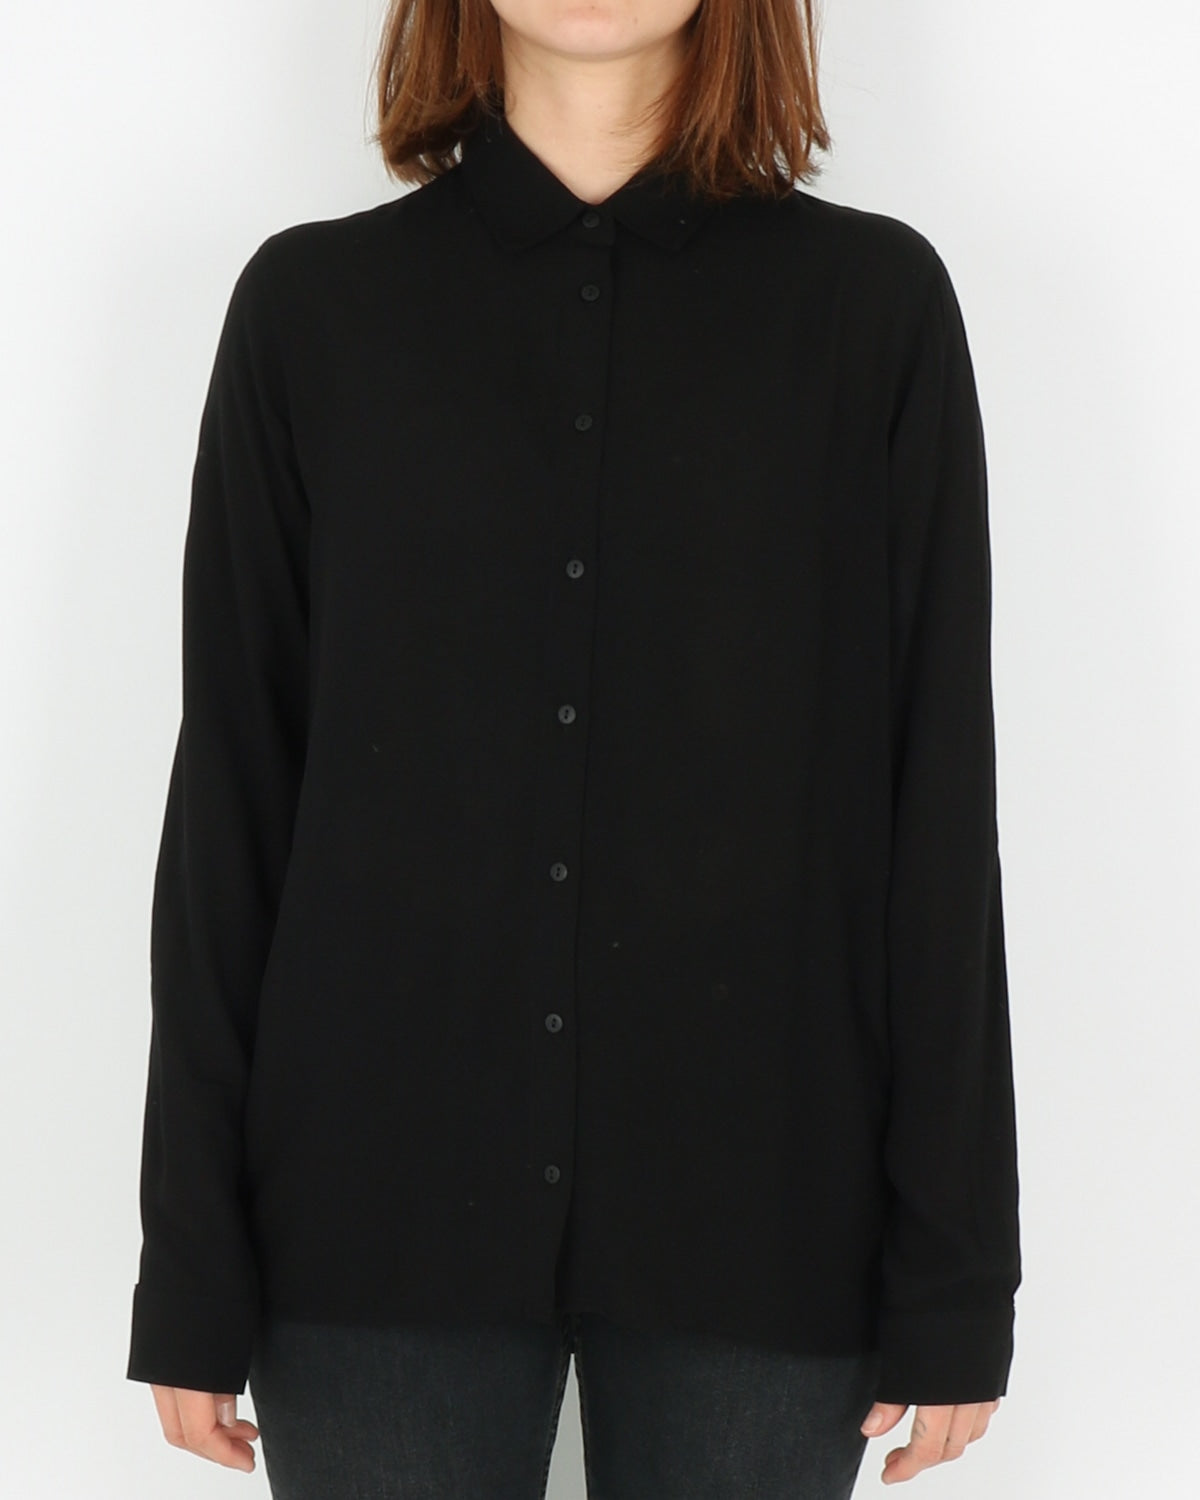 basic apparel_alanis shirt_black_1_3